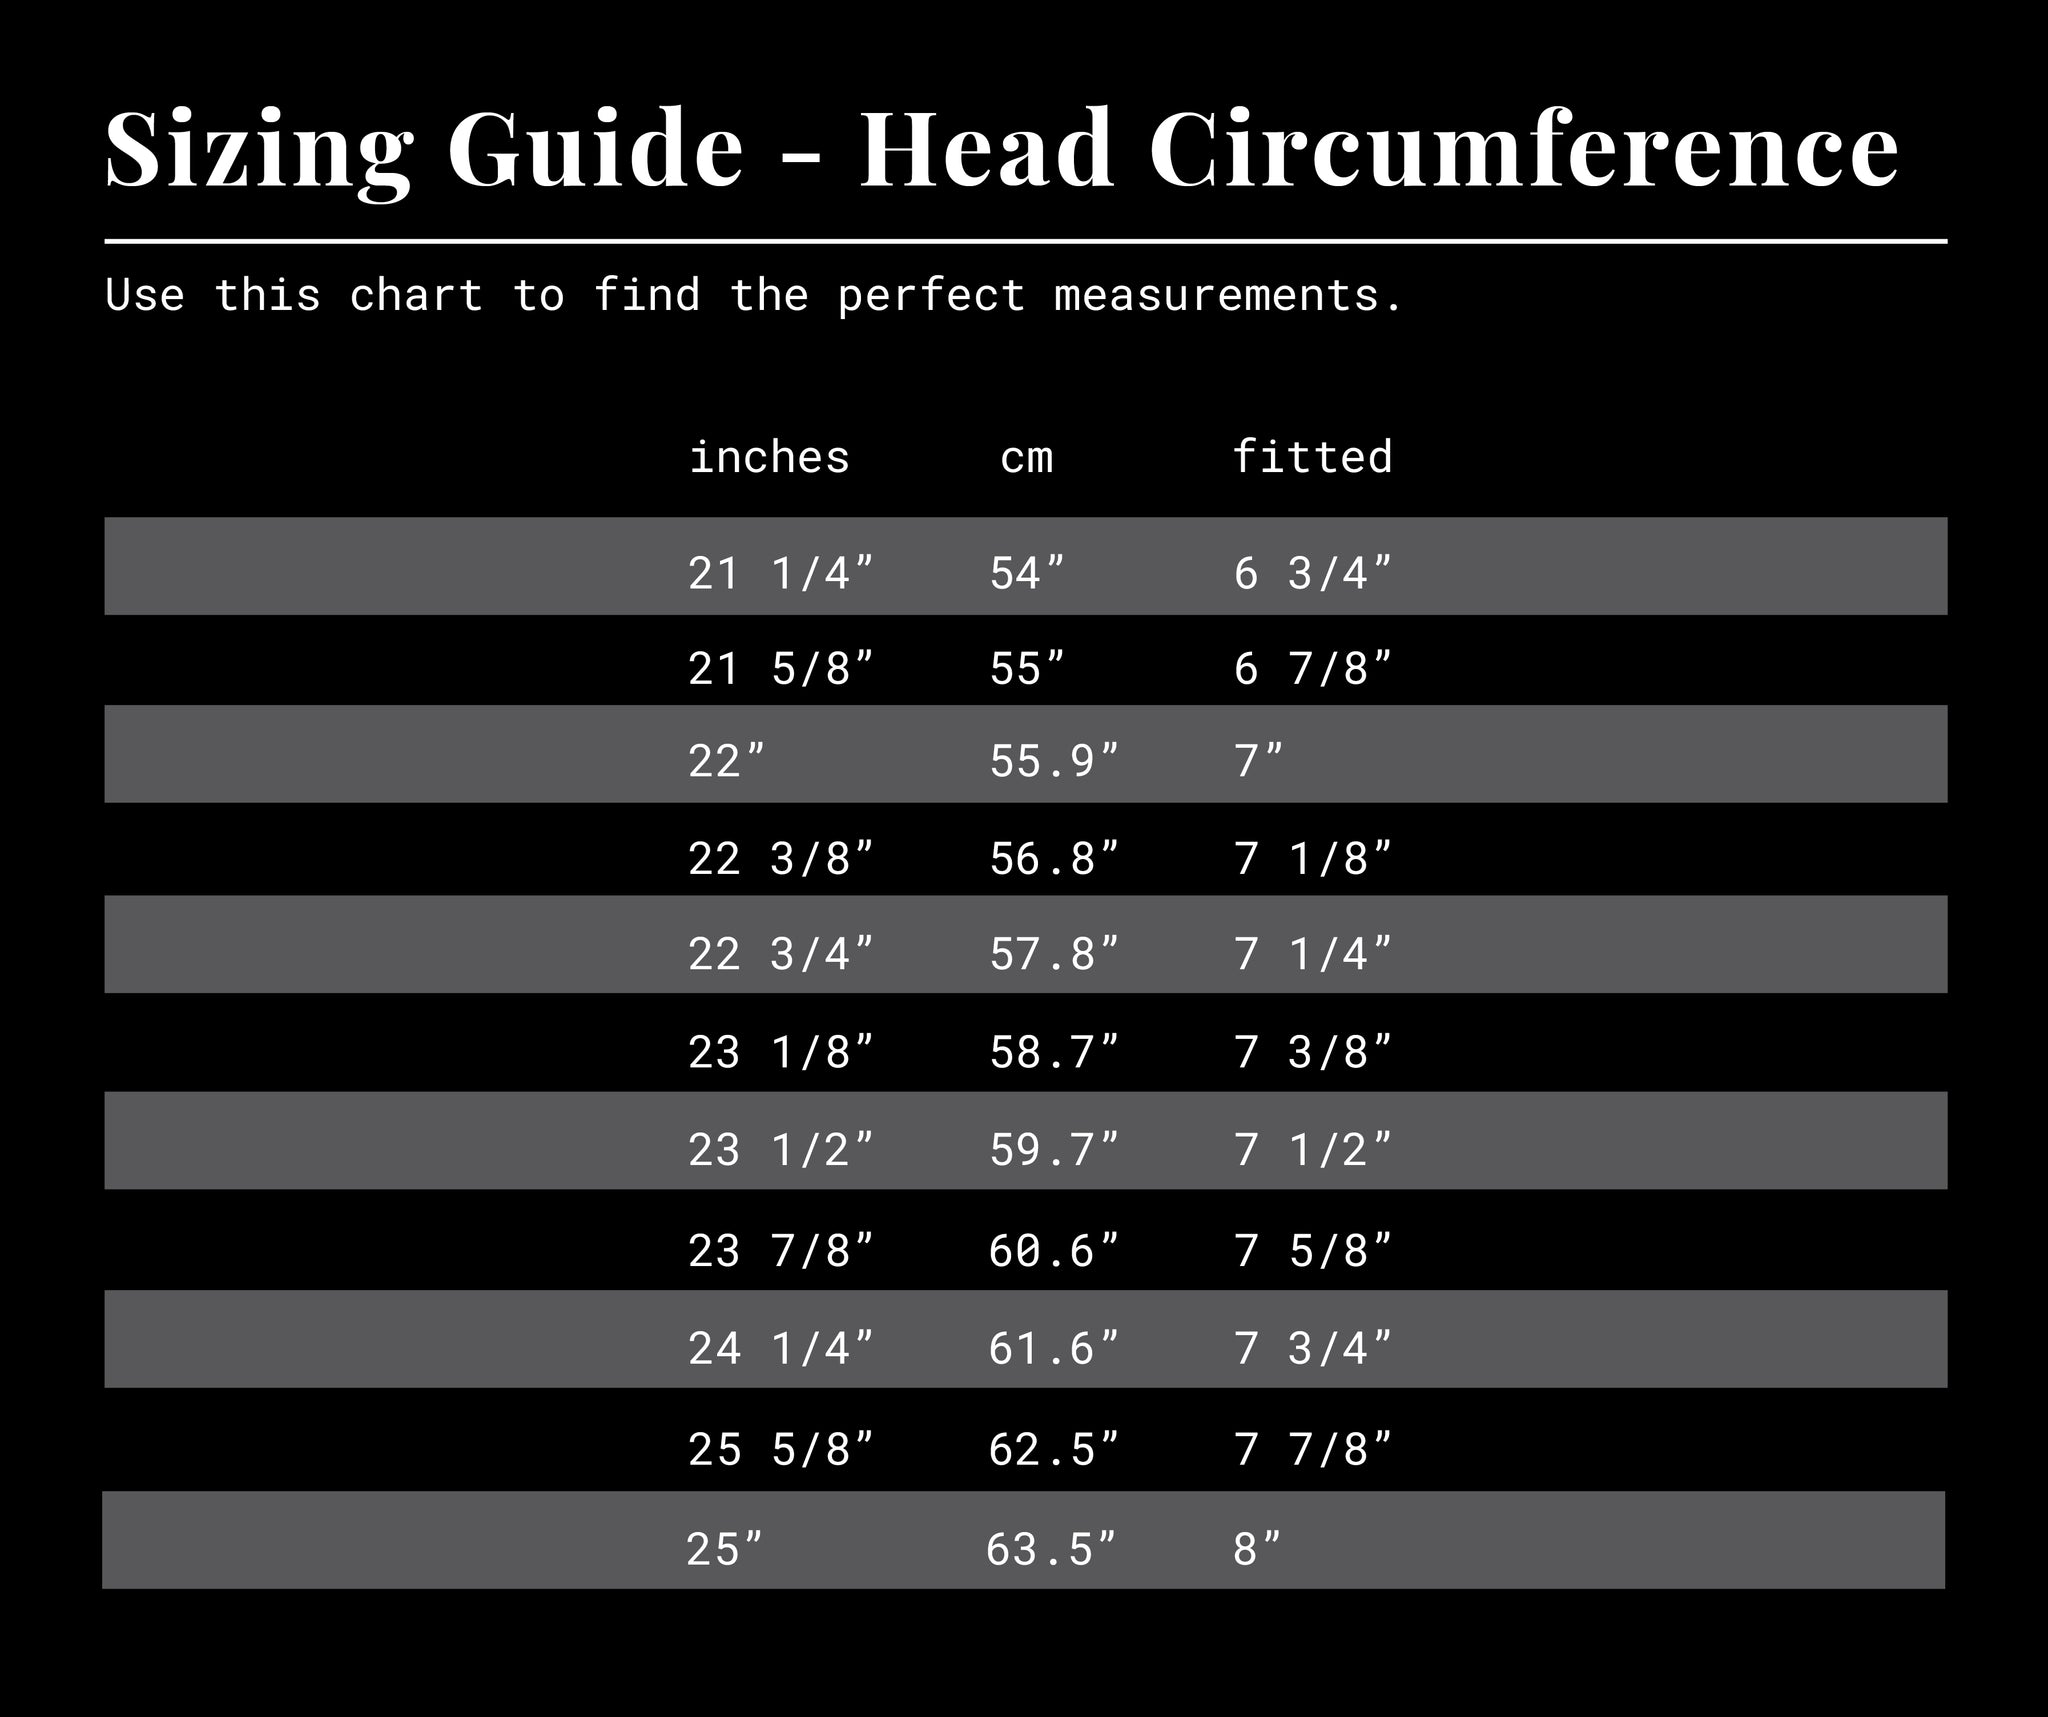 INR x The Salt Ranch Hat Sizing Guide